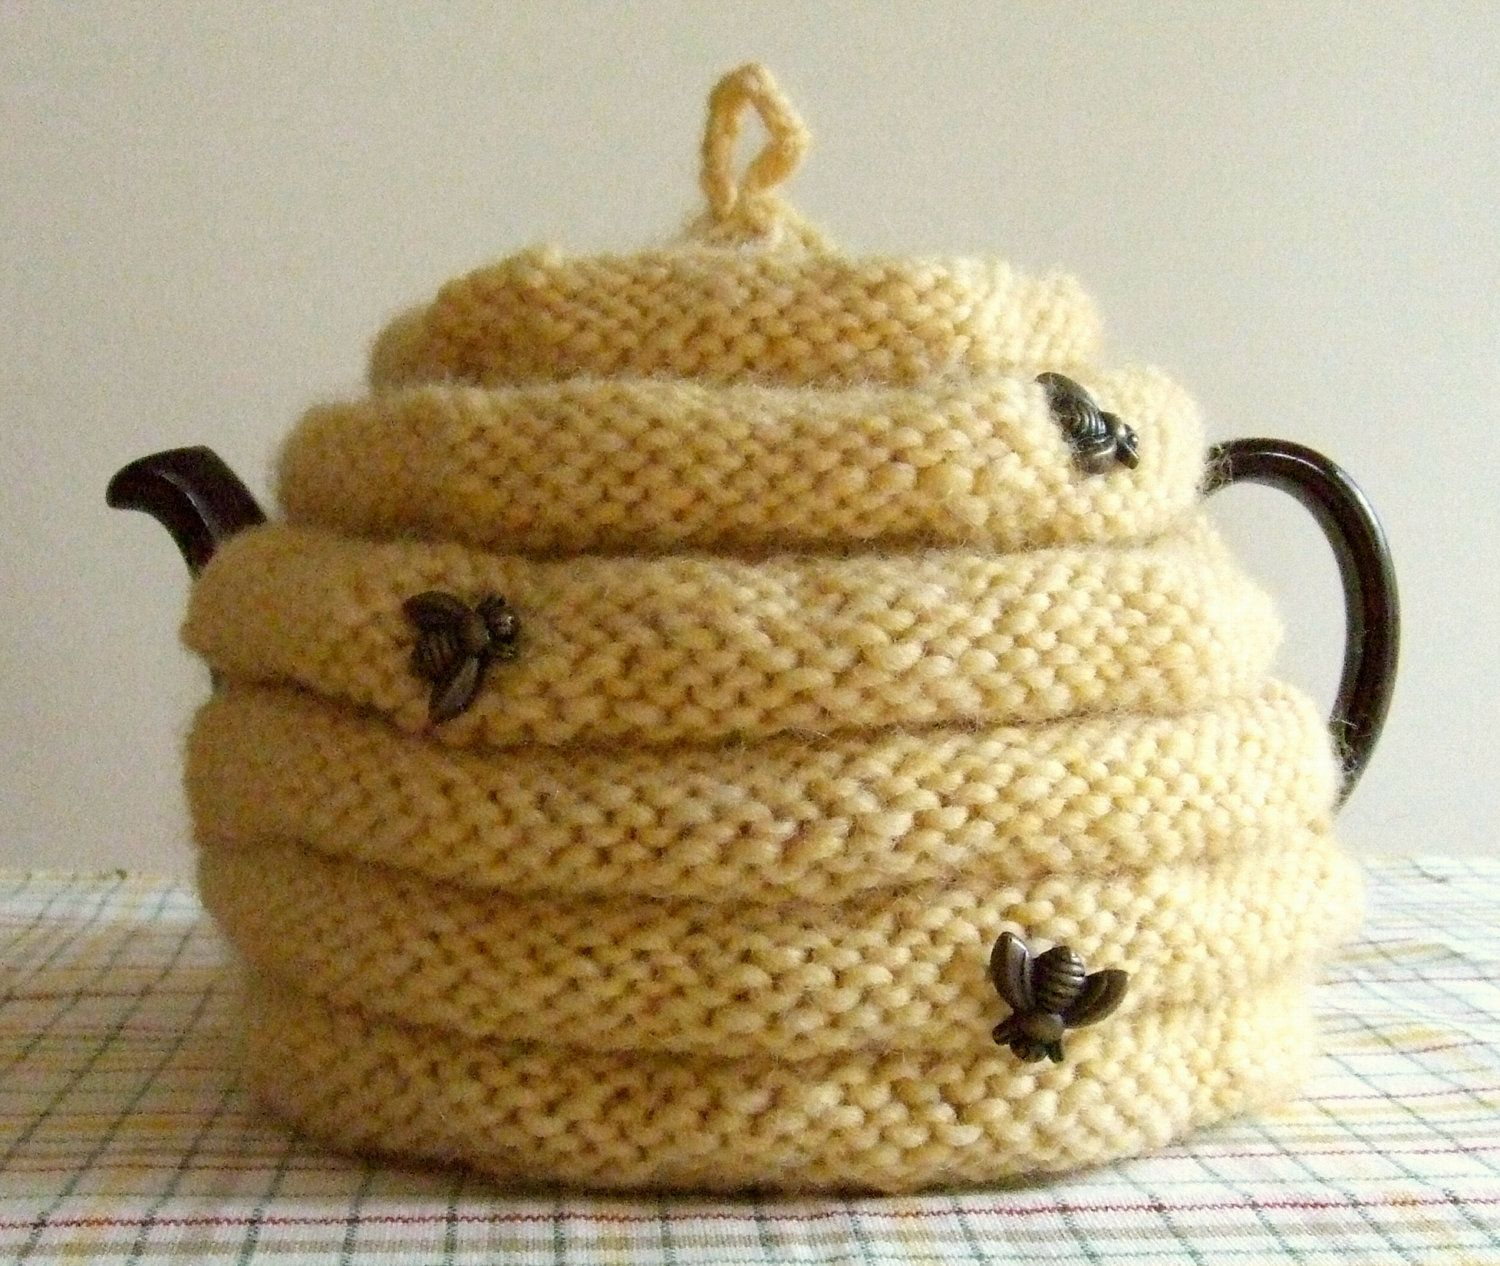 Spouted beehive tea cozy pdf pattern by dawnbroccodesigns on etsy spouted beehive tea cozy pdf pattern by dawnbroccodesigns on etsy 650 dt1010fo